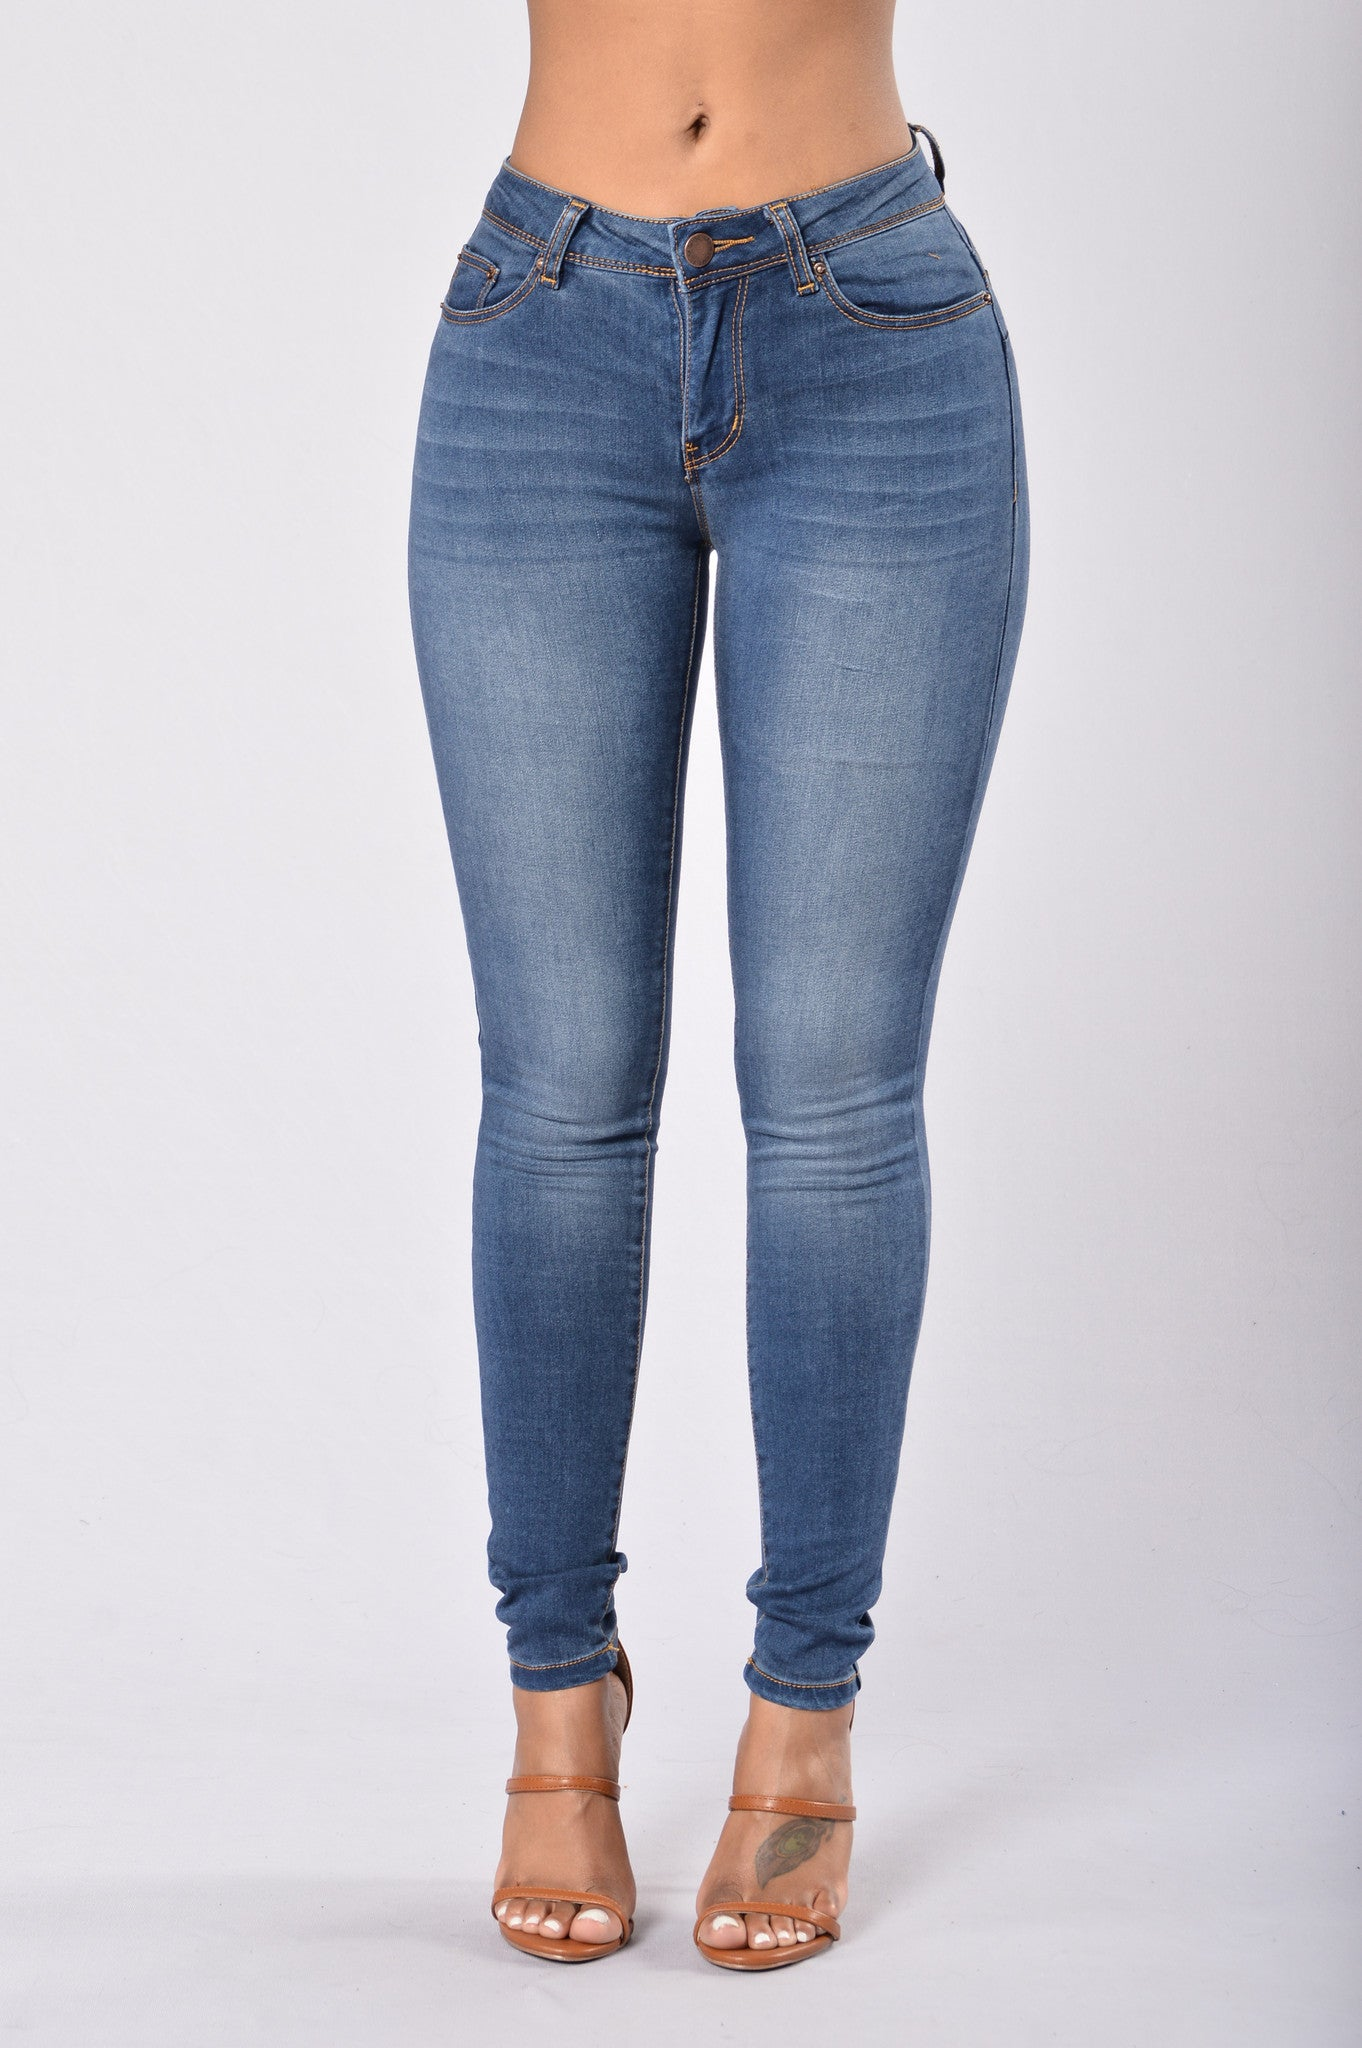 a4fd36c3da0 Miss New Booty Shaping Denim - Medium Blue